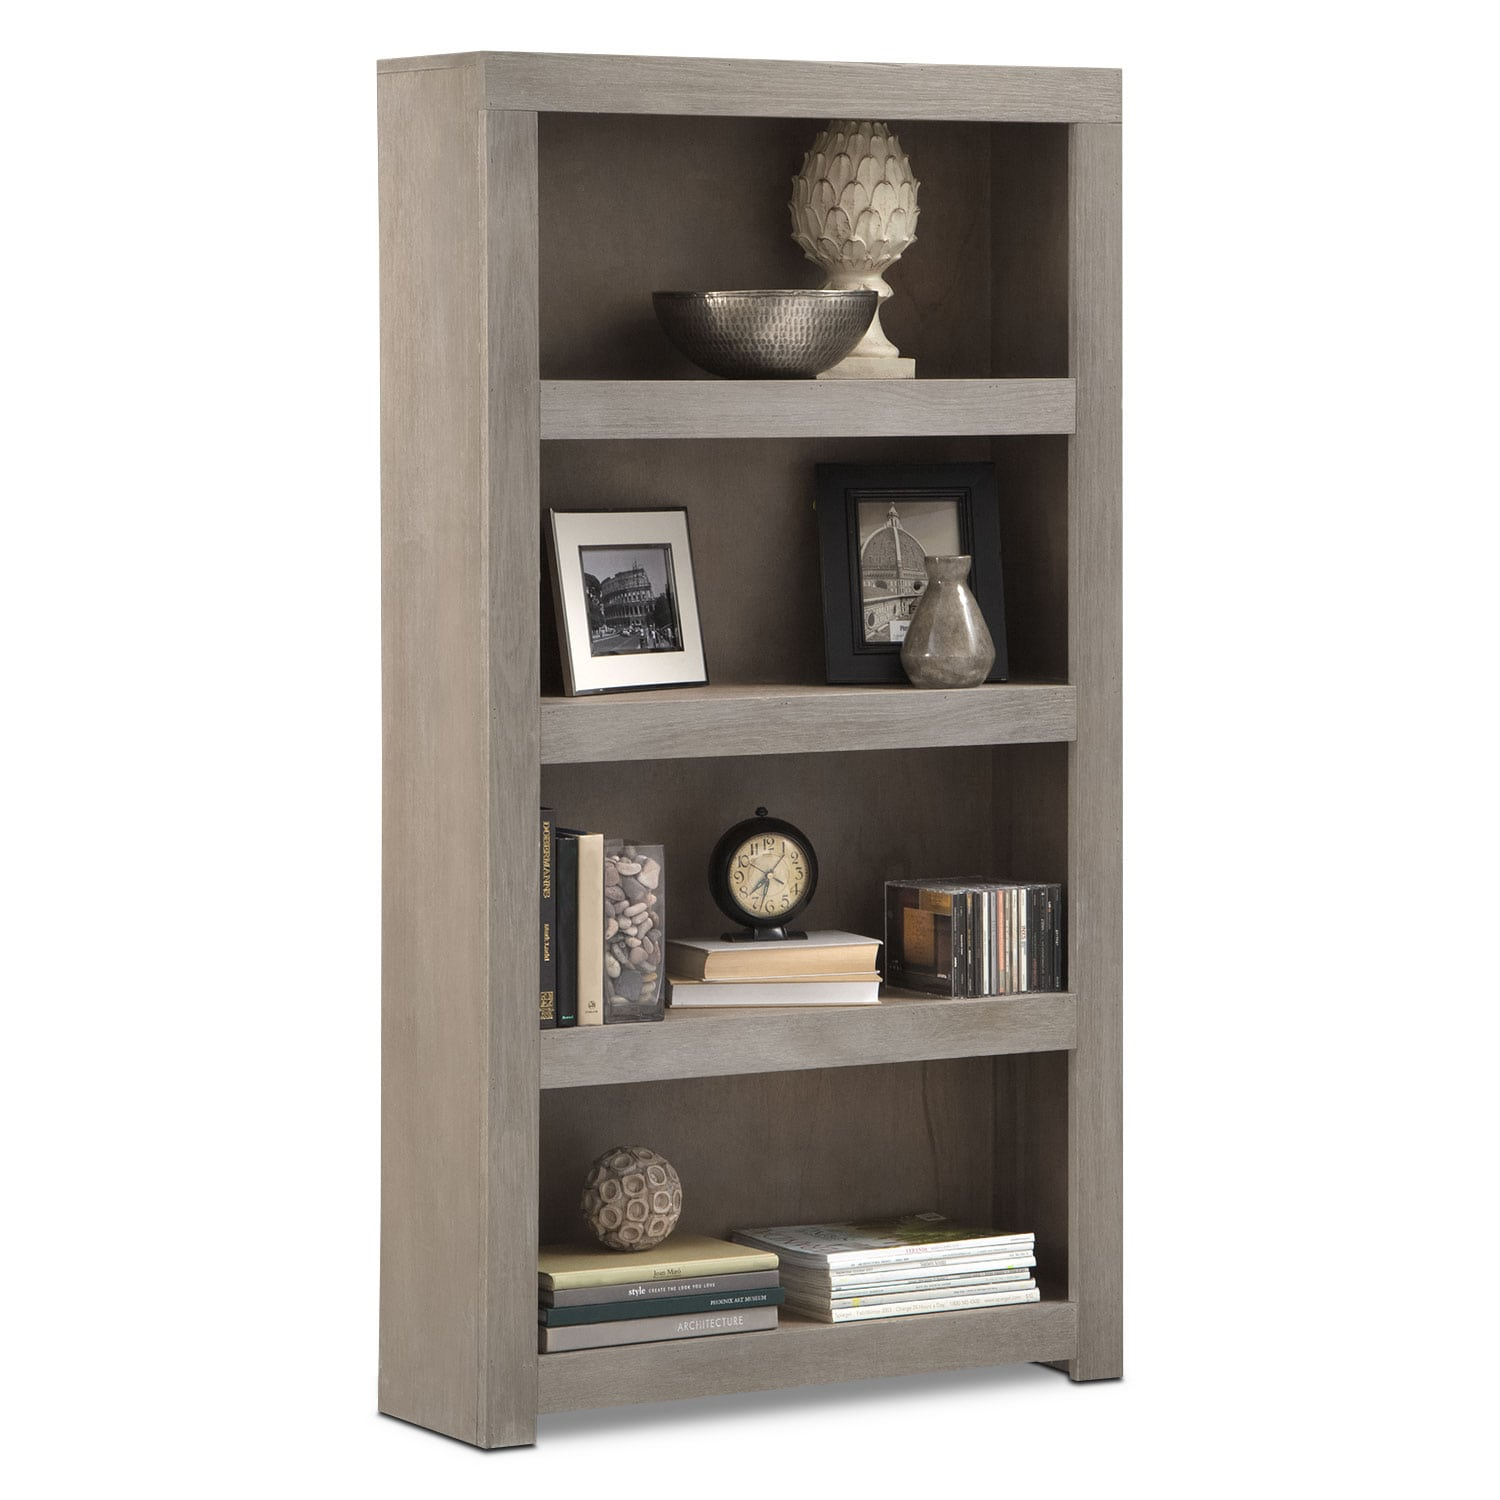 ever supreme bookcase smallspaces ikea billy wallcabinet via hacks best storage cabinet hack ingenious built ins the